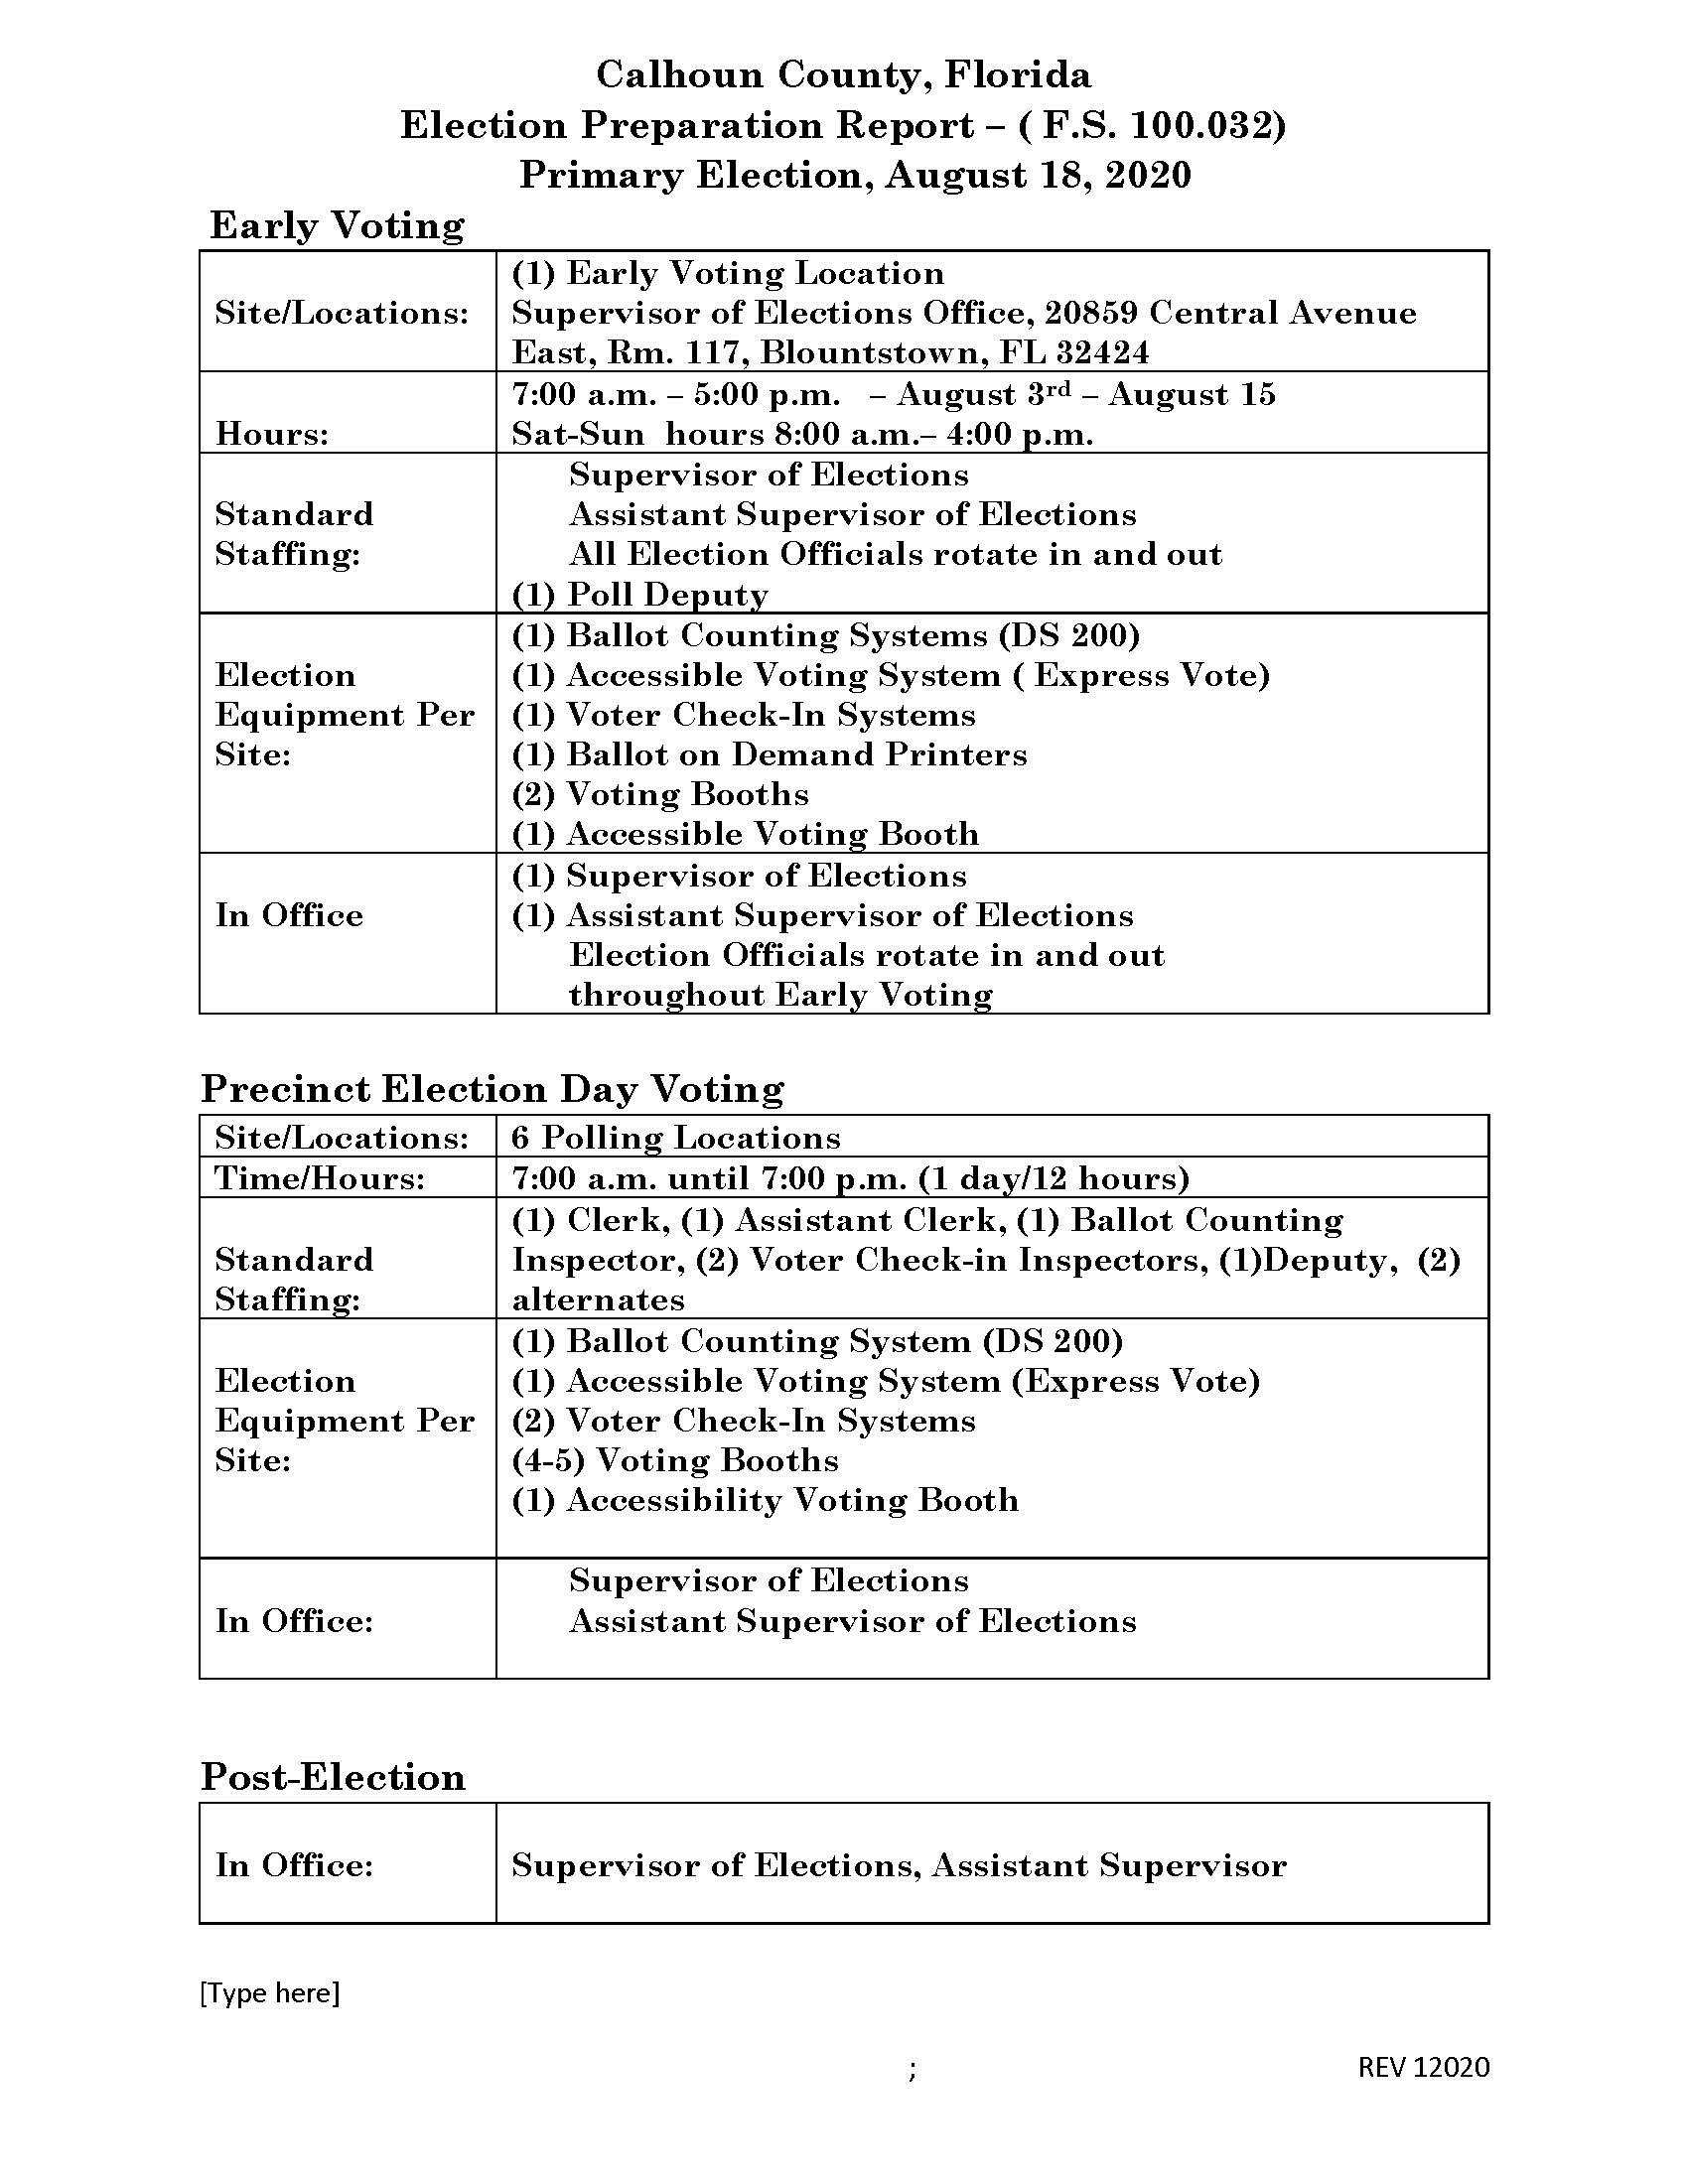 2020  Primary Election Preparation Report